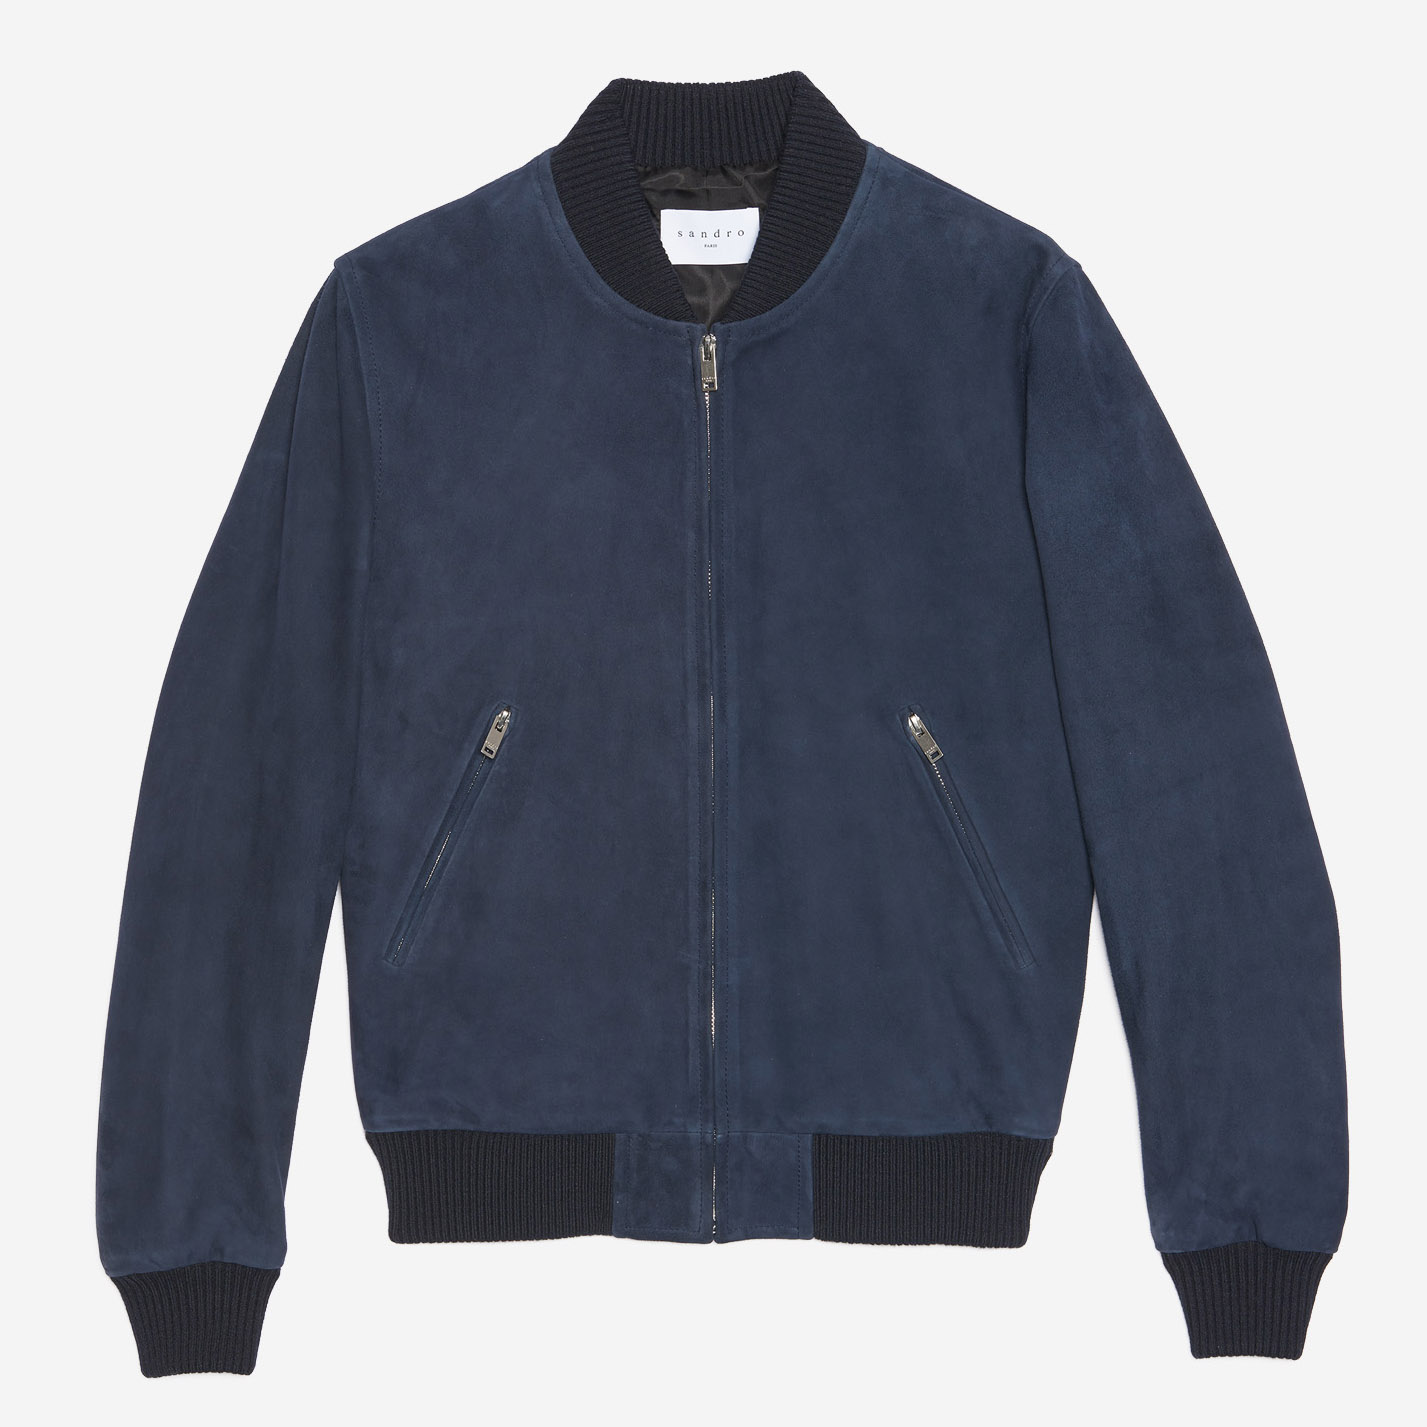 Sandro Suede Jacket Performance Upgrade: Experts' Picks